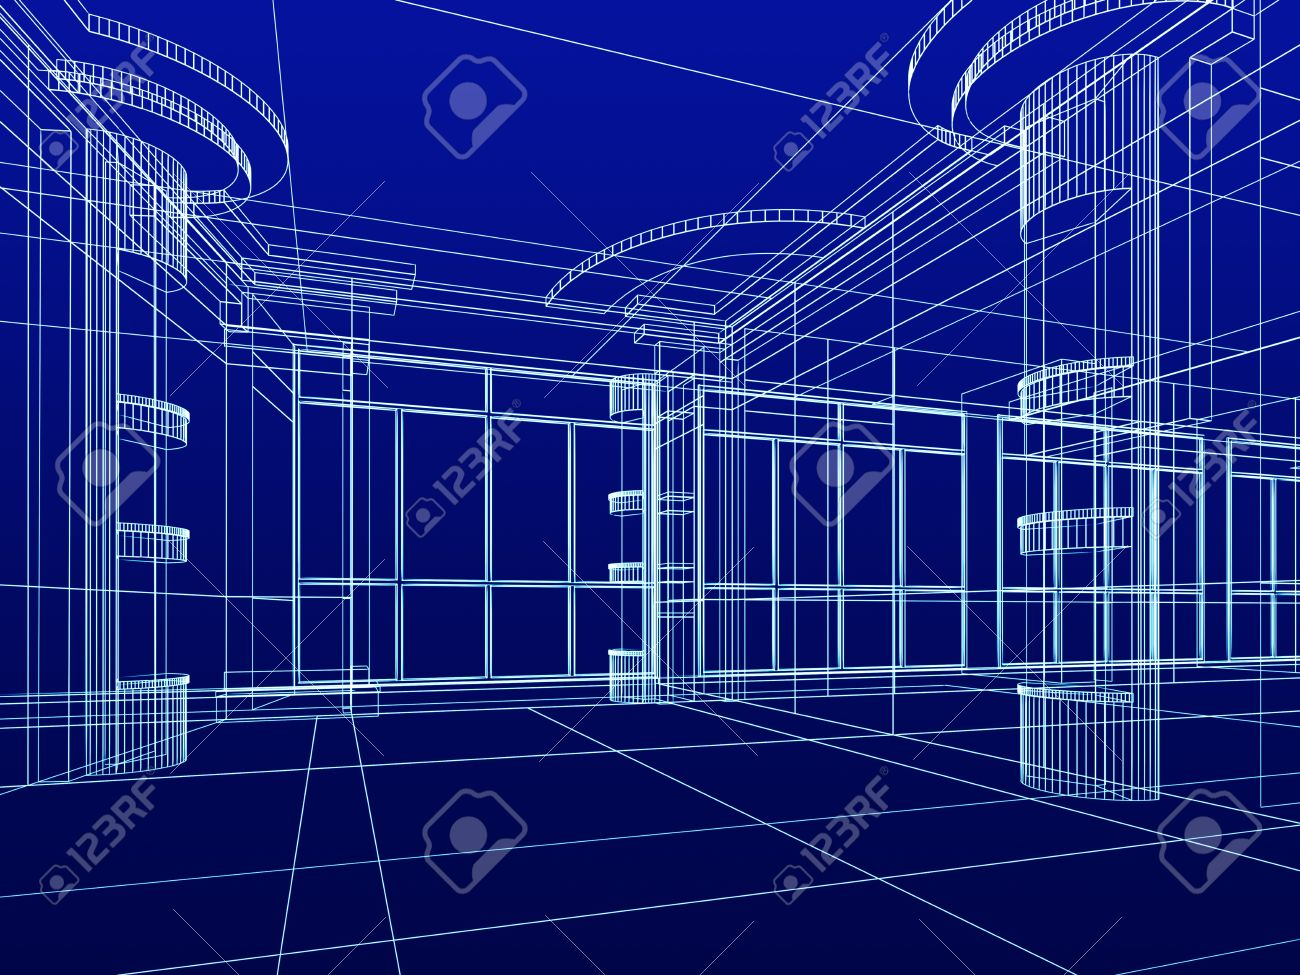 Stock Photo   Abstract Design Sketch Of Modern Office Interior